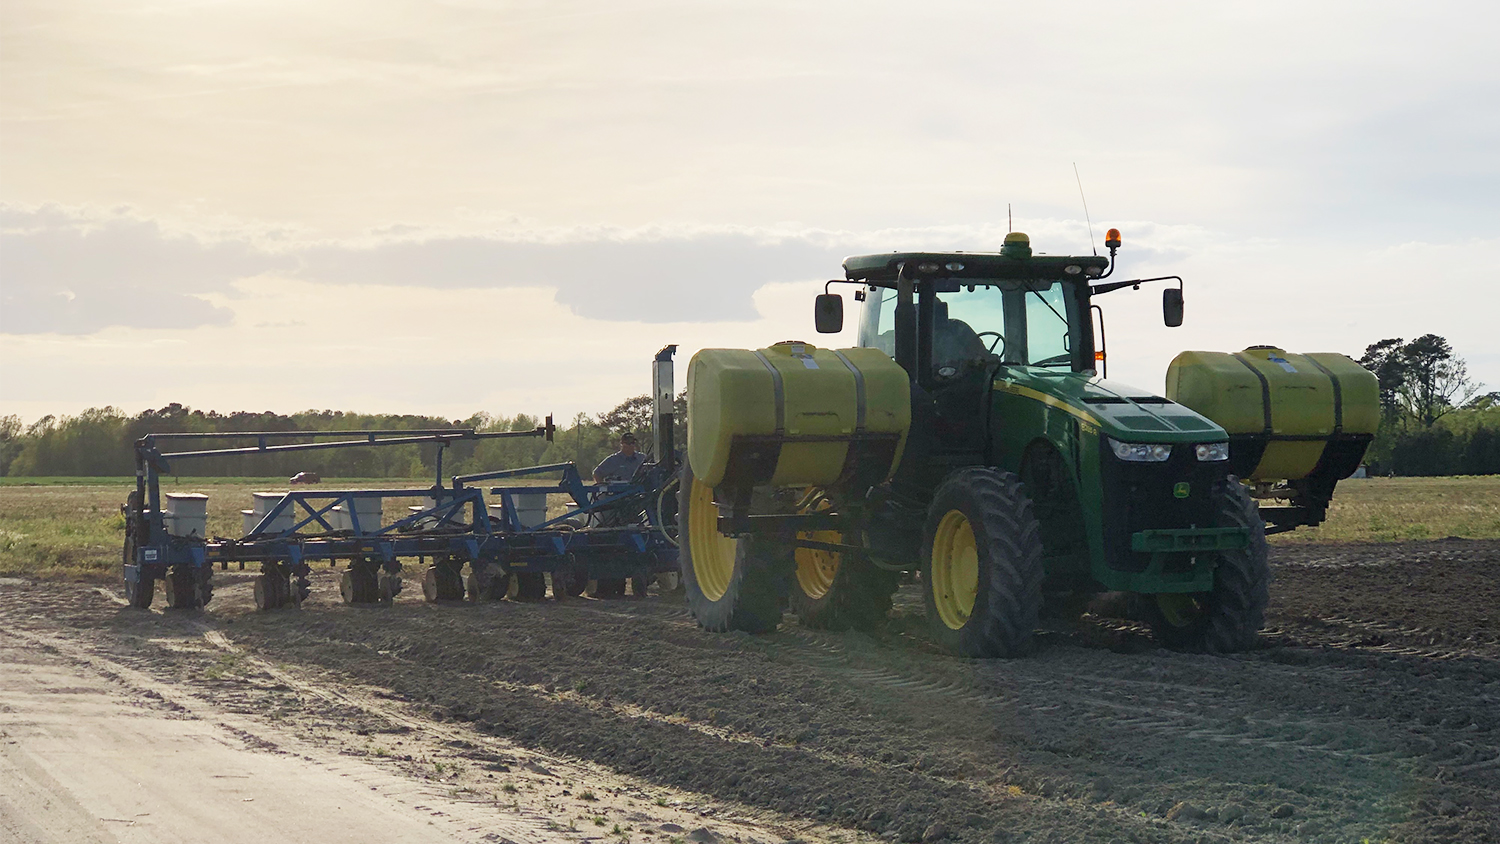 tractor pulls a planter across an empty field